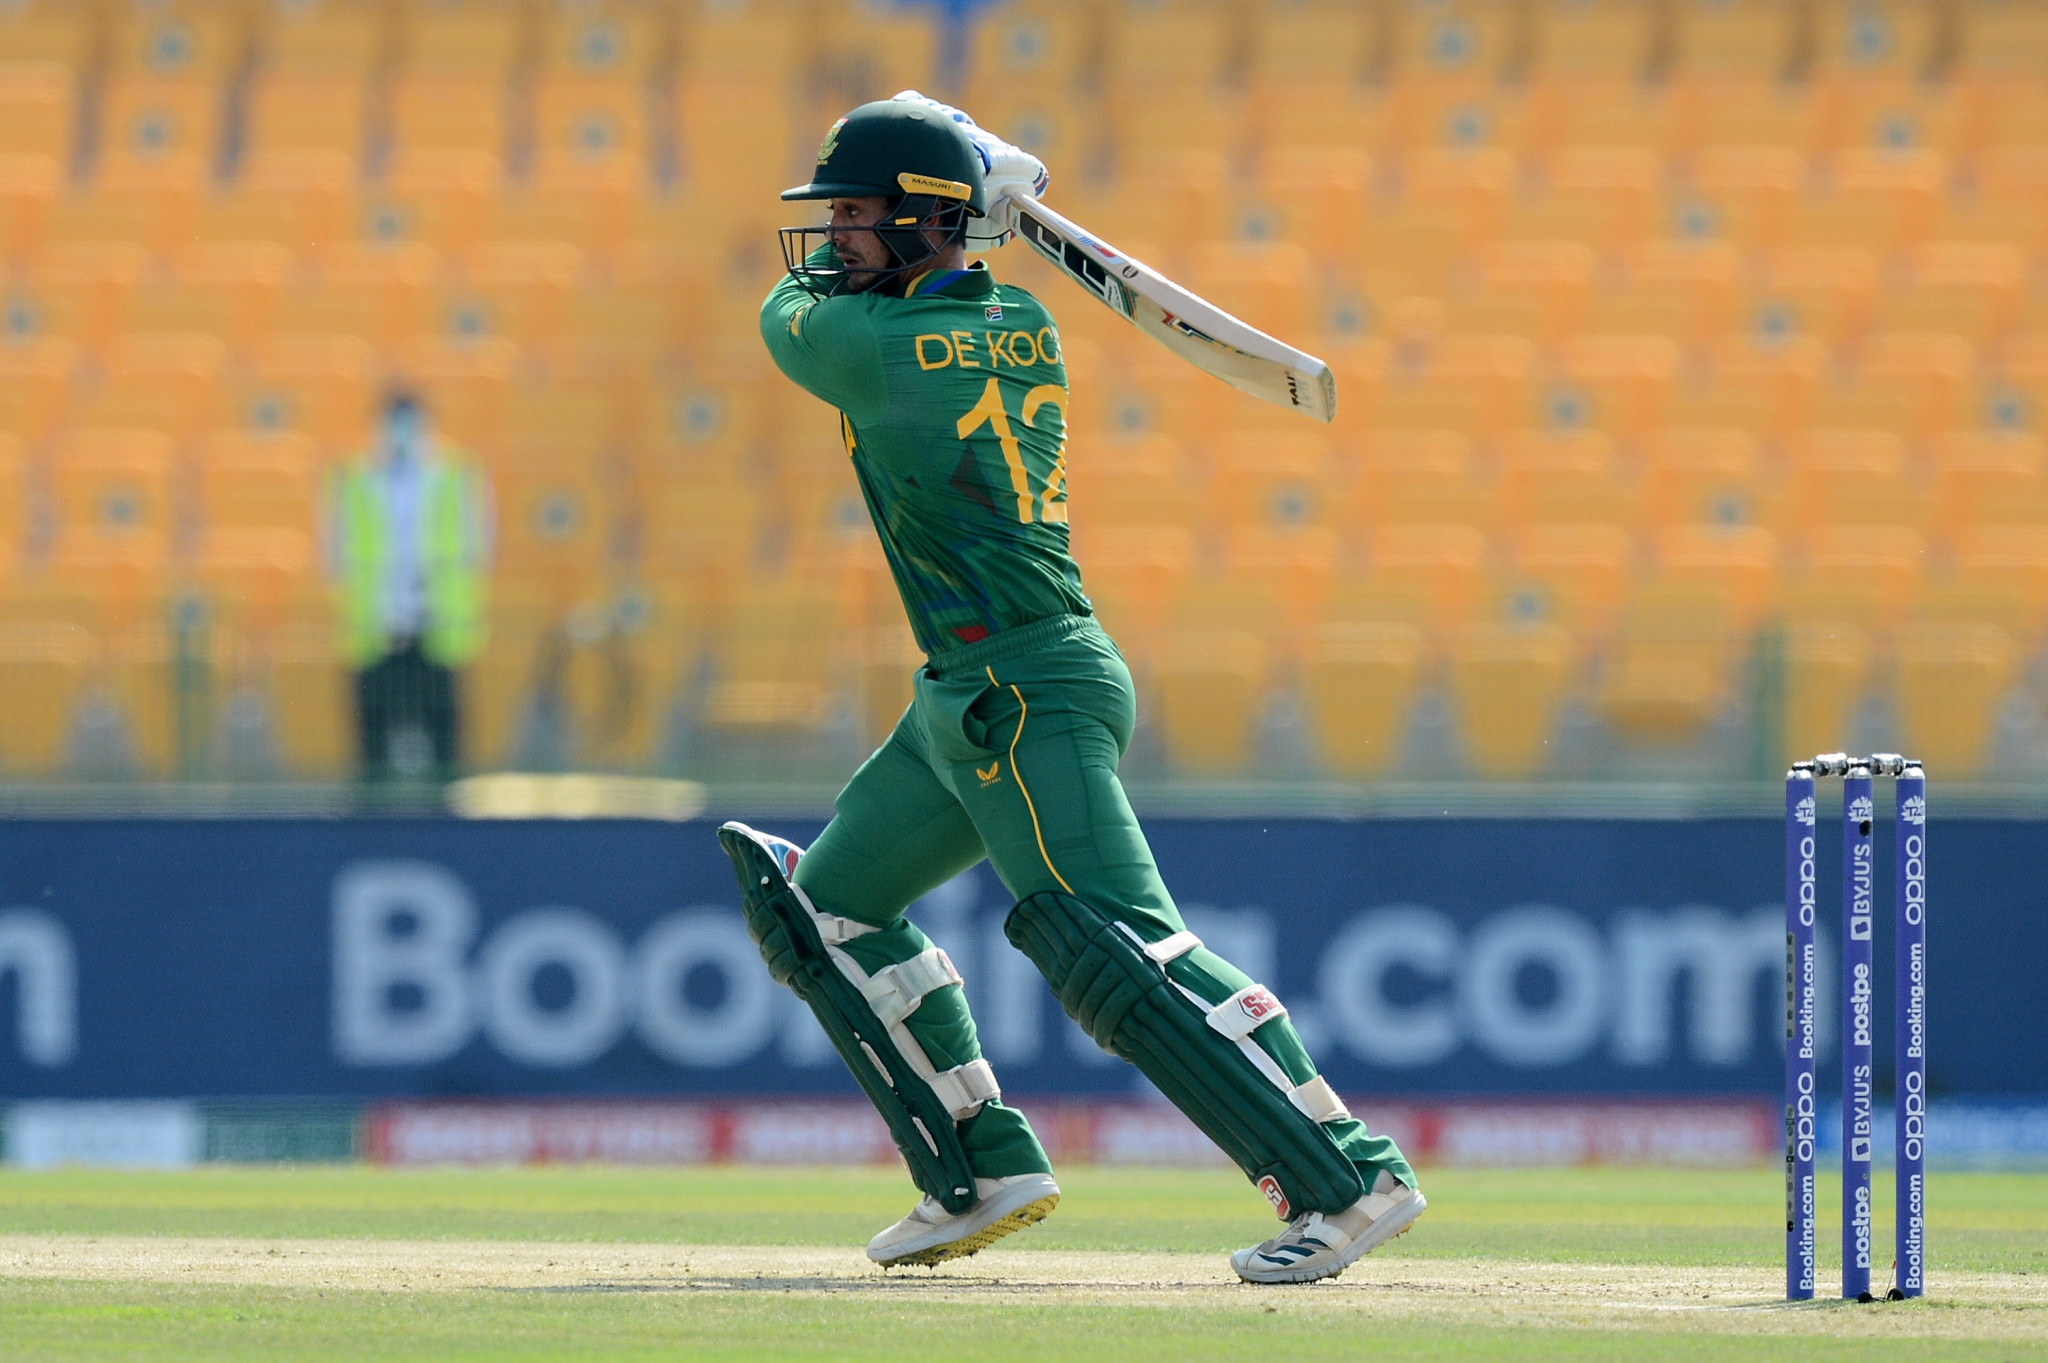 De Kock withdraws over taking the knee as South Africa knock off West Indies at T20 World Cup